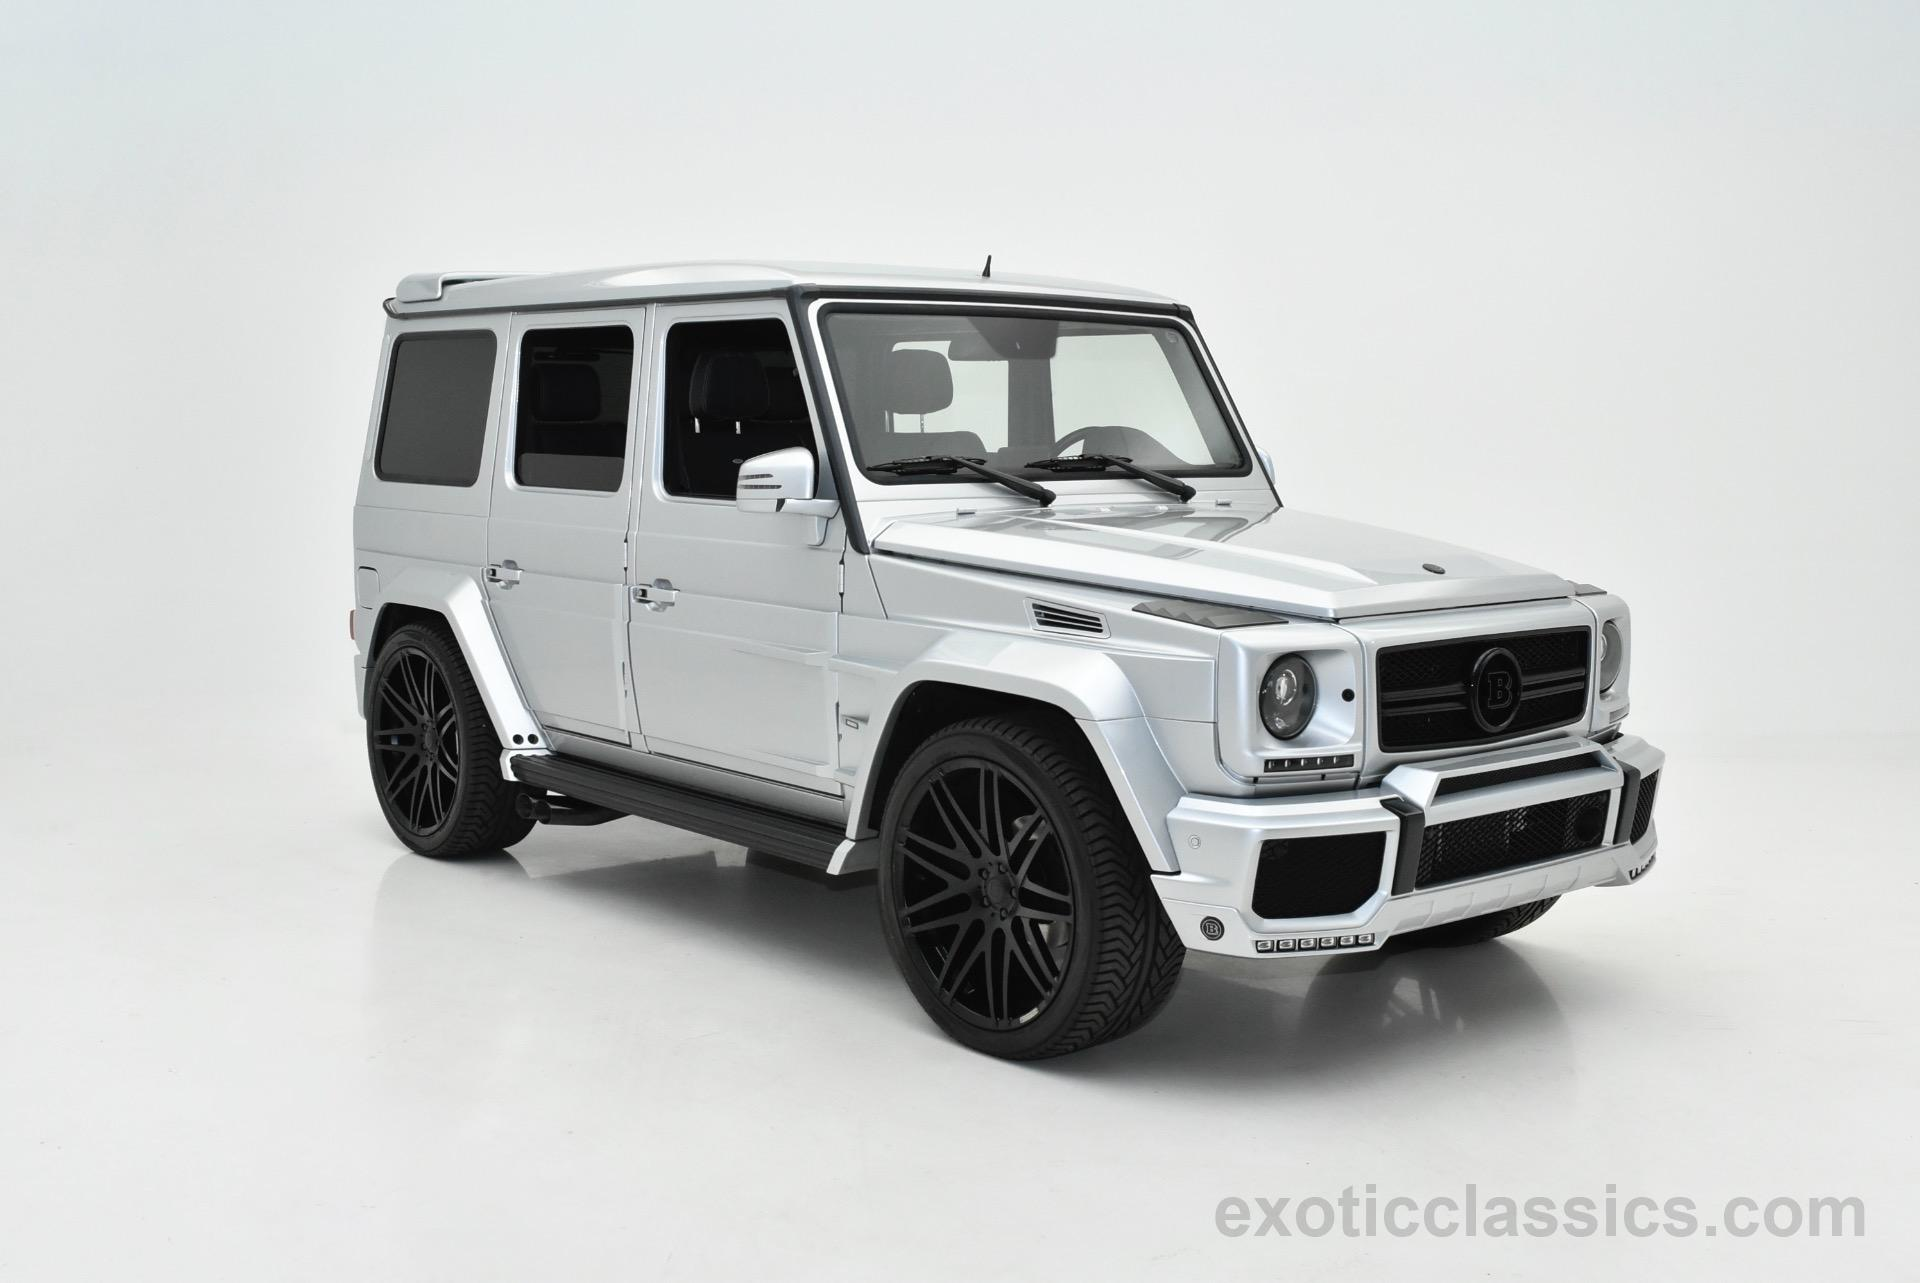 2015 mercedes benz g class g 550 exotic classic car. Black Bedroom Furniture Sets. Home Design Ideas